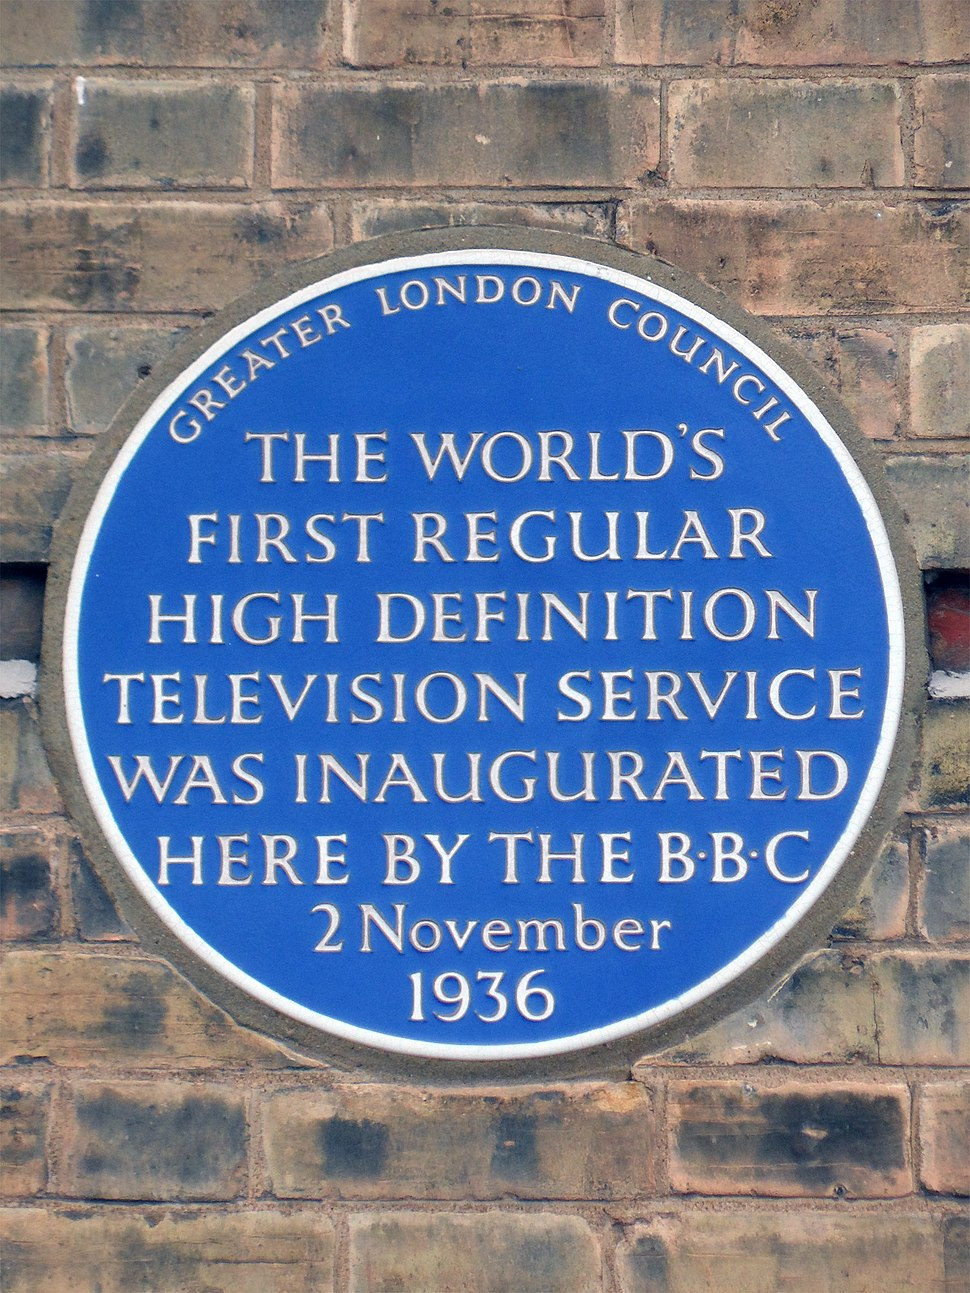 The world%27s first regular high definition television service was inaugurated here by the BBC 2 November 1936